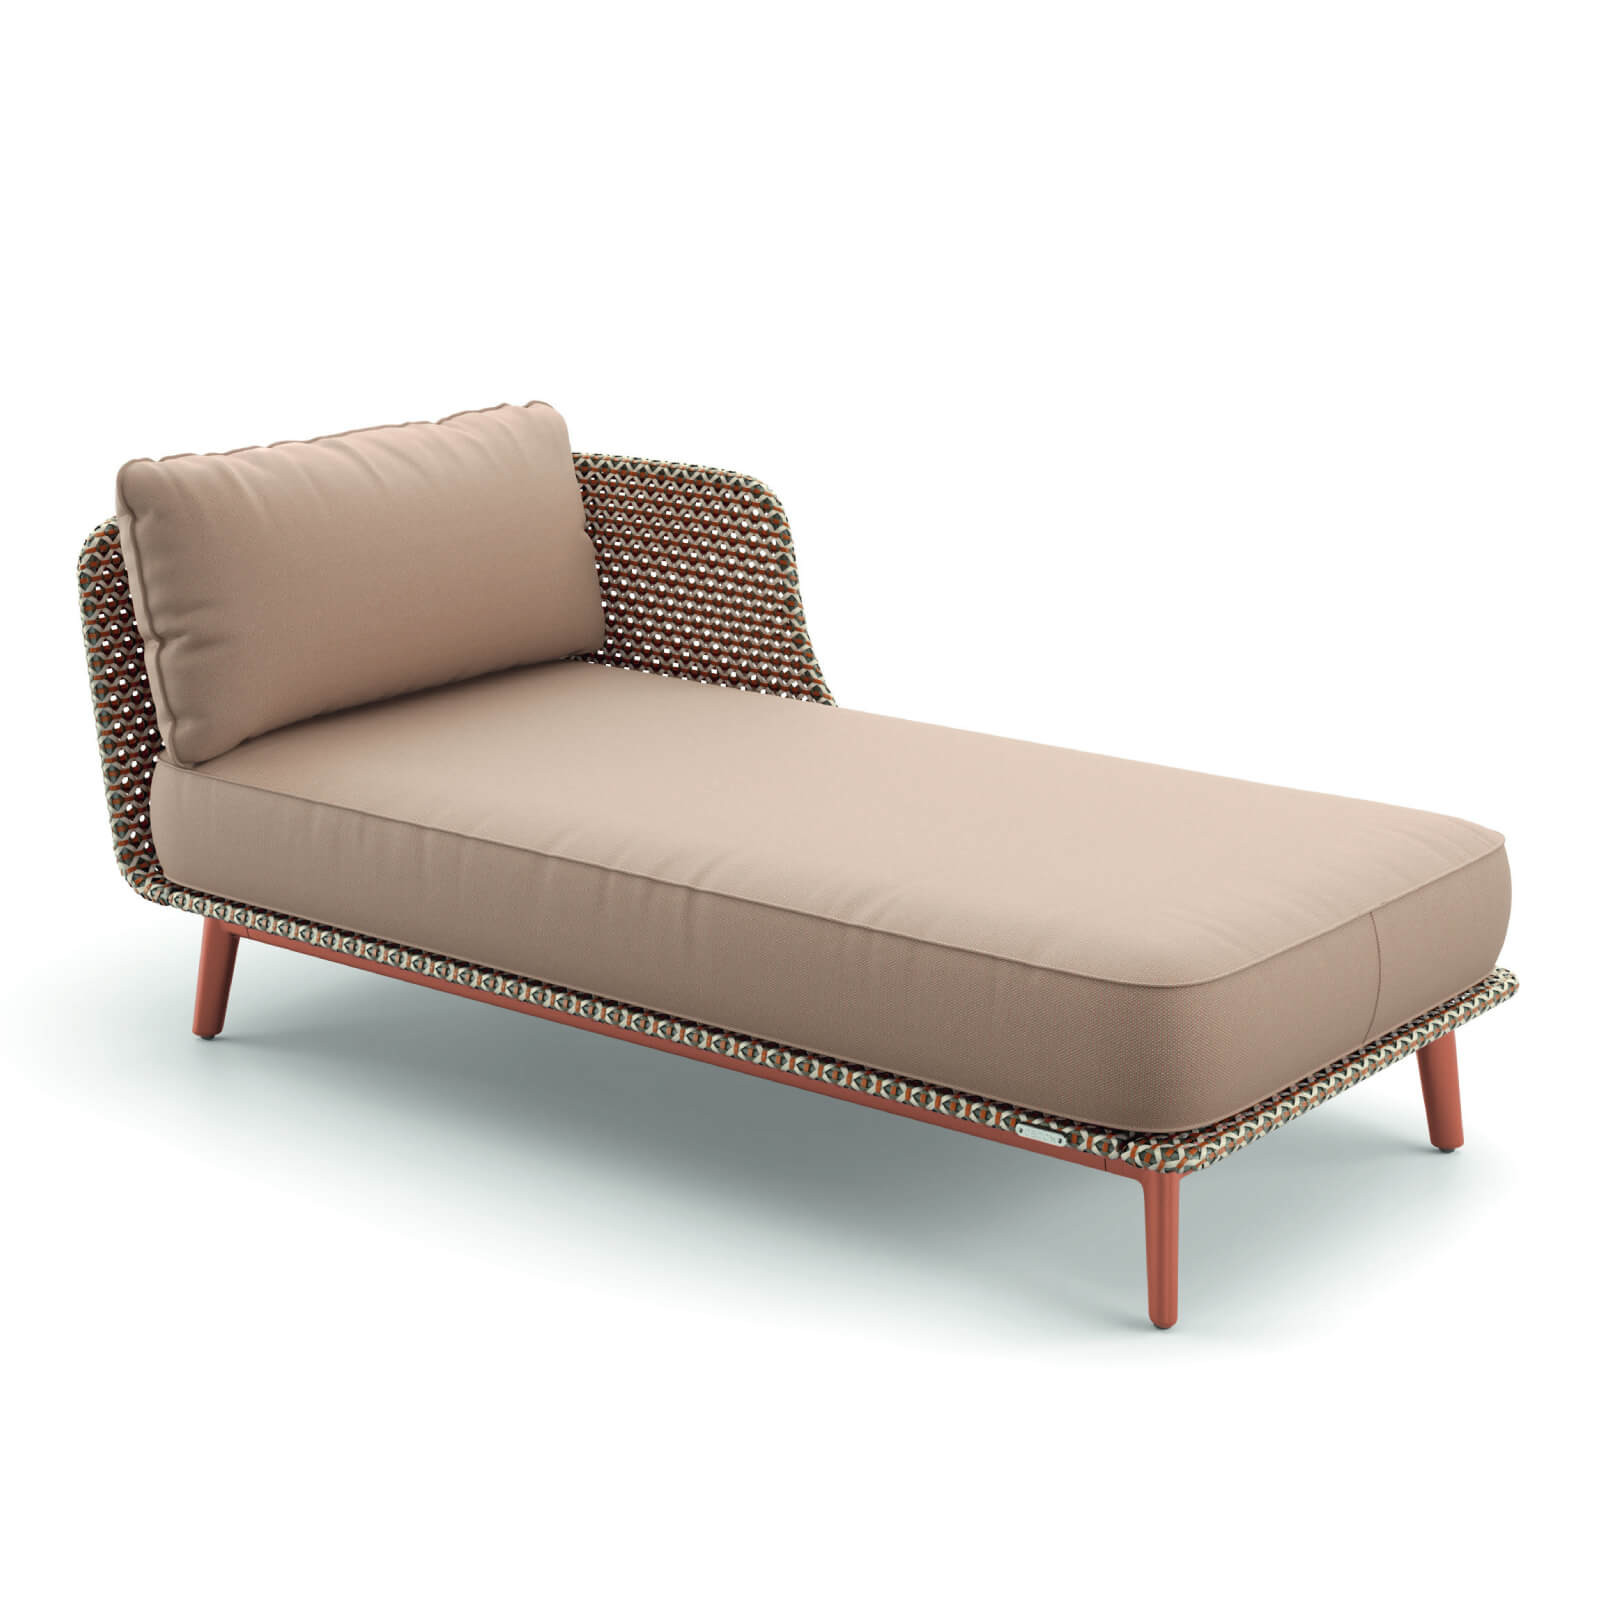 DEDON MBARQ Daybed links 084 terracotta mit 151 chestnut